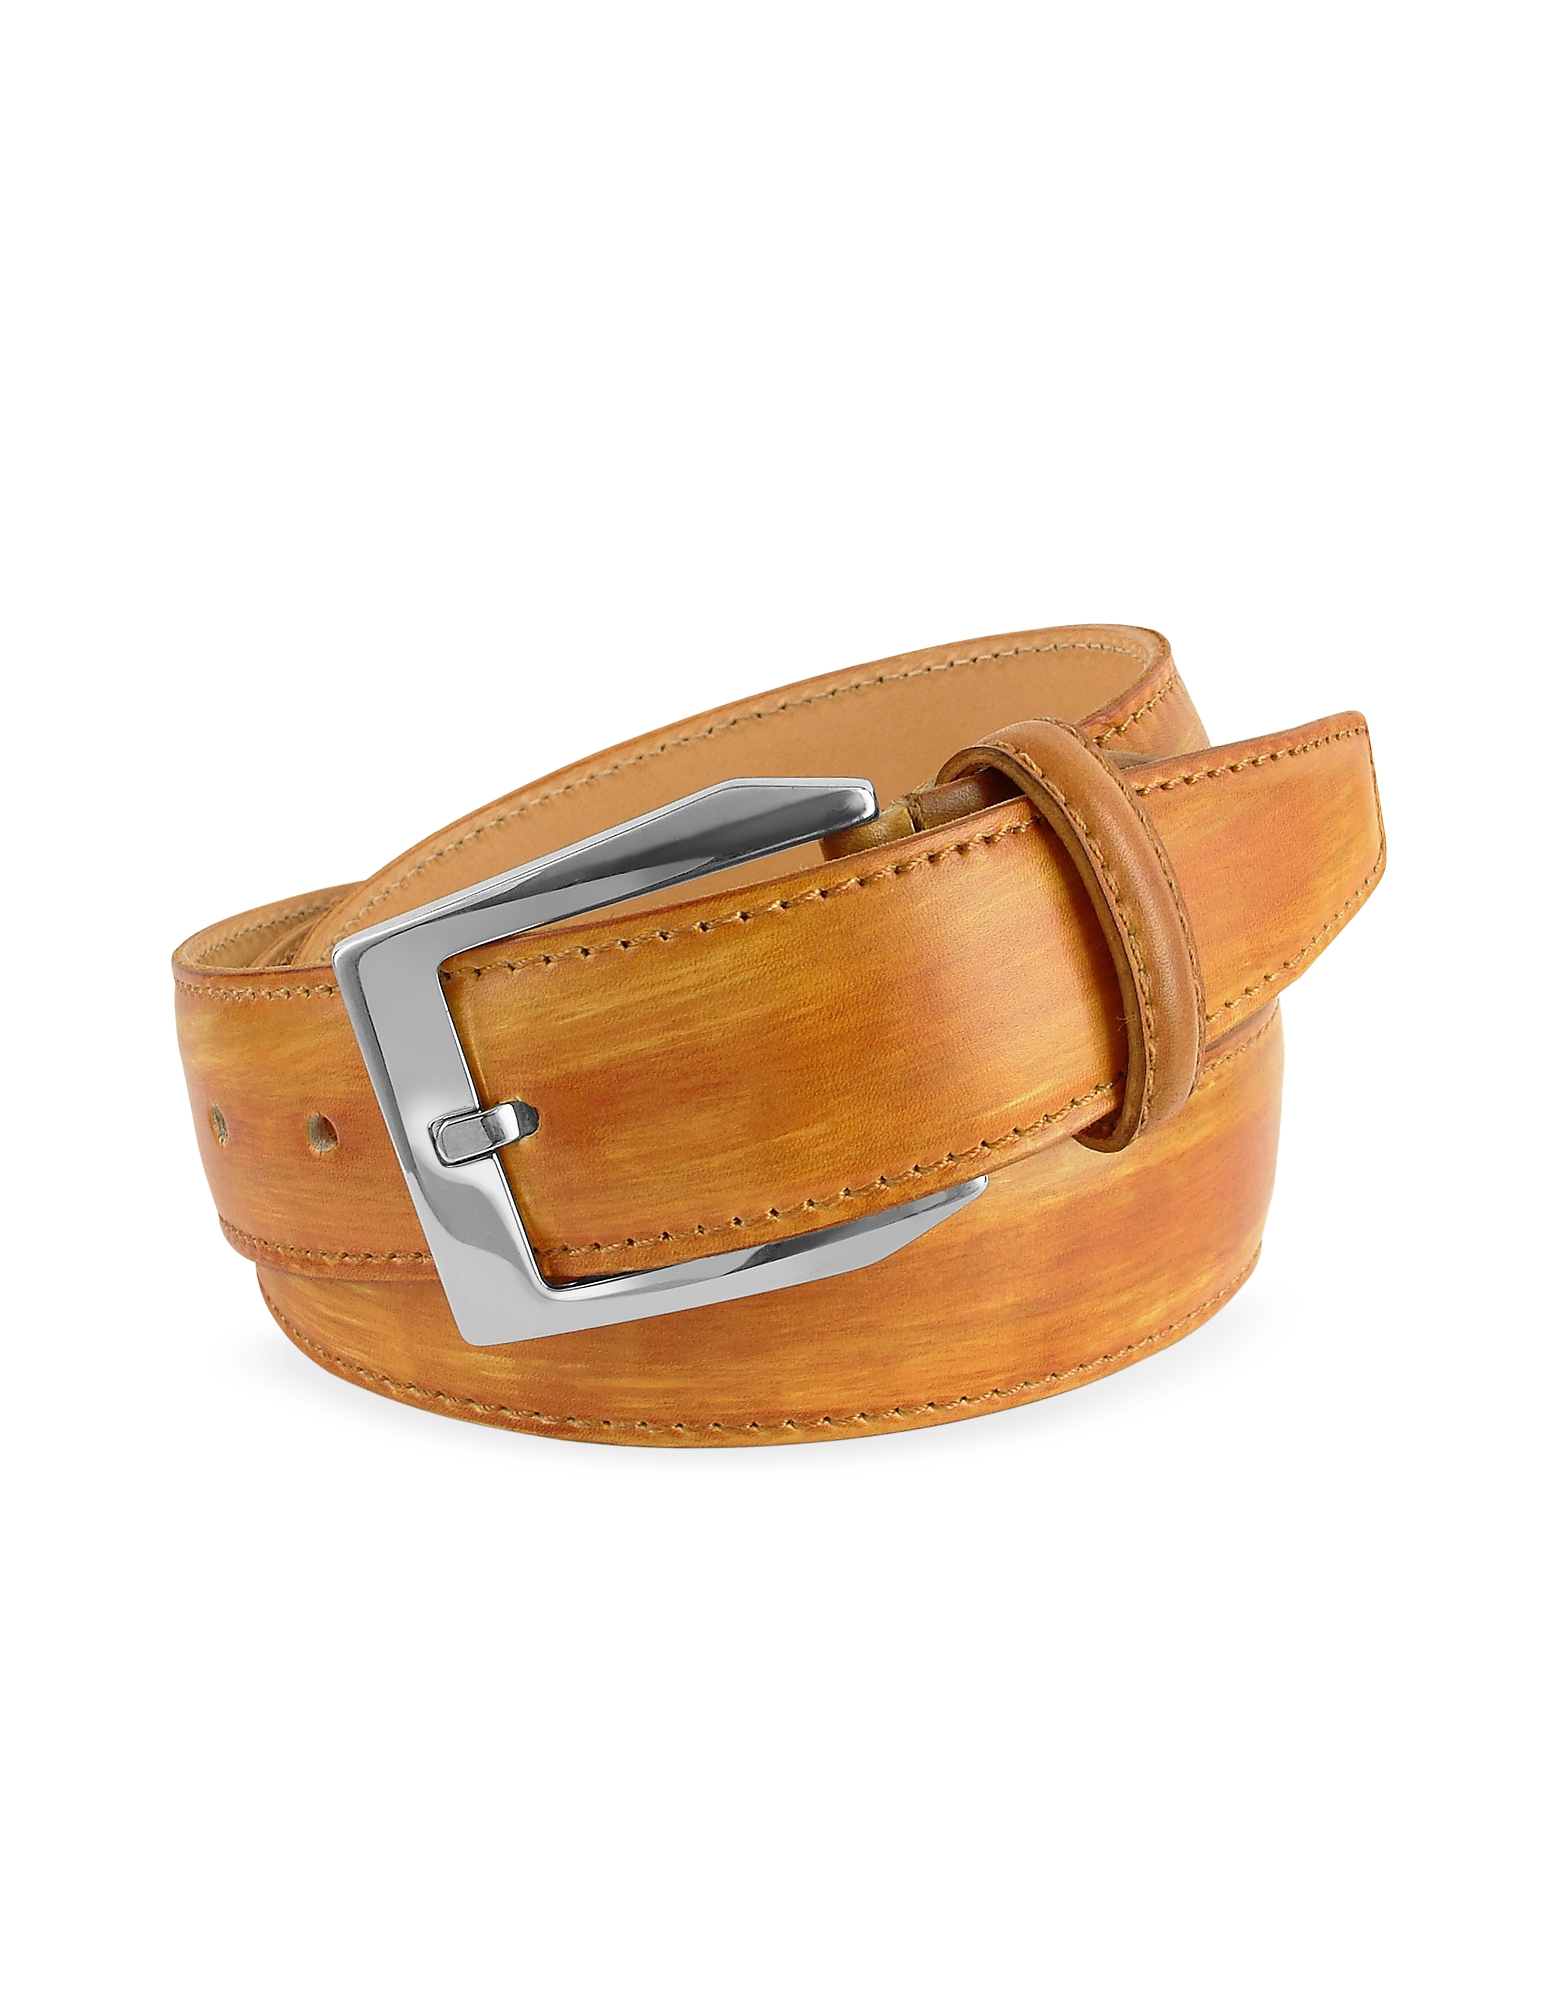 Pakerson Men's Belts, Men's Ocher Hand Painted Italian Leather Belt